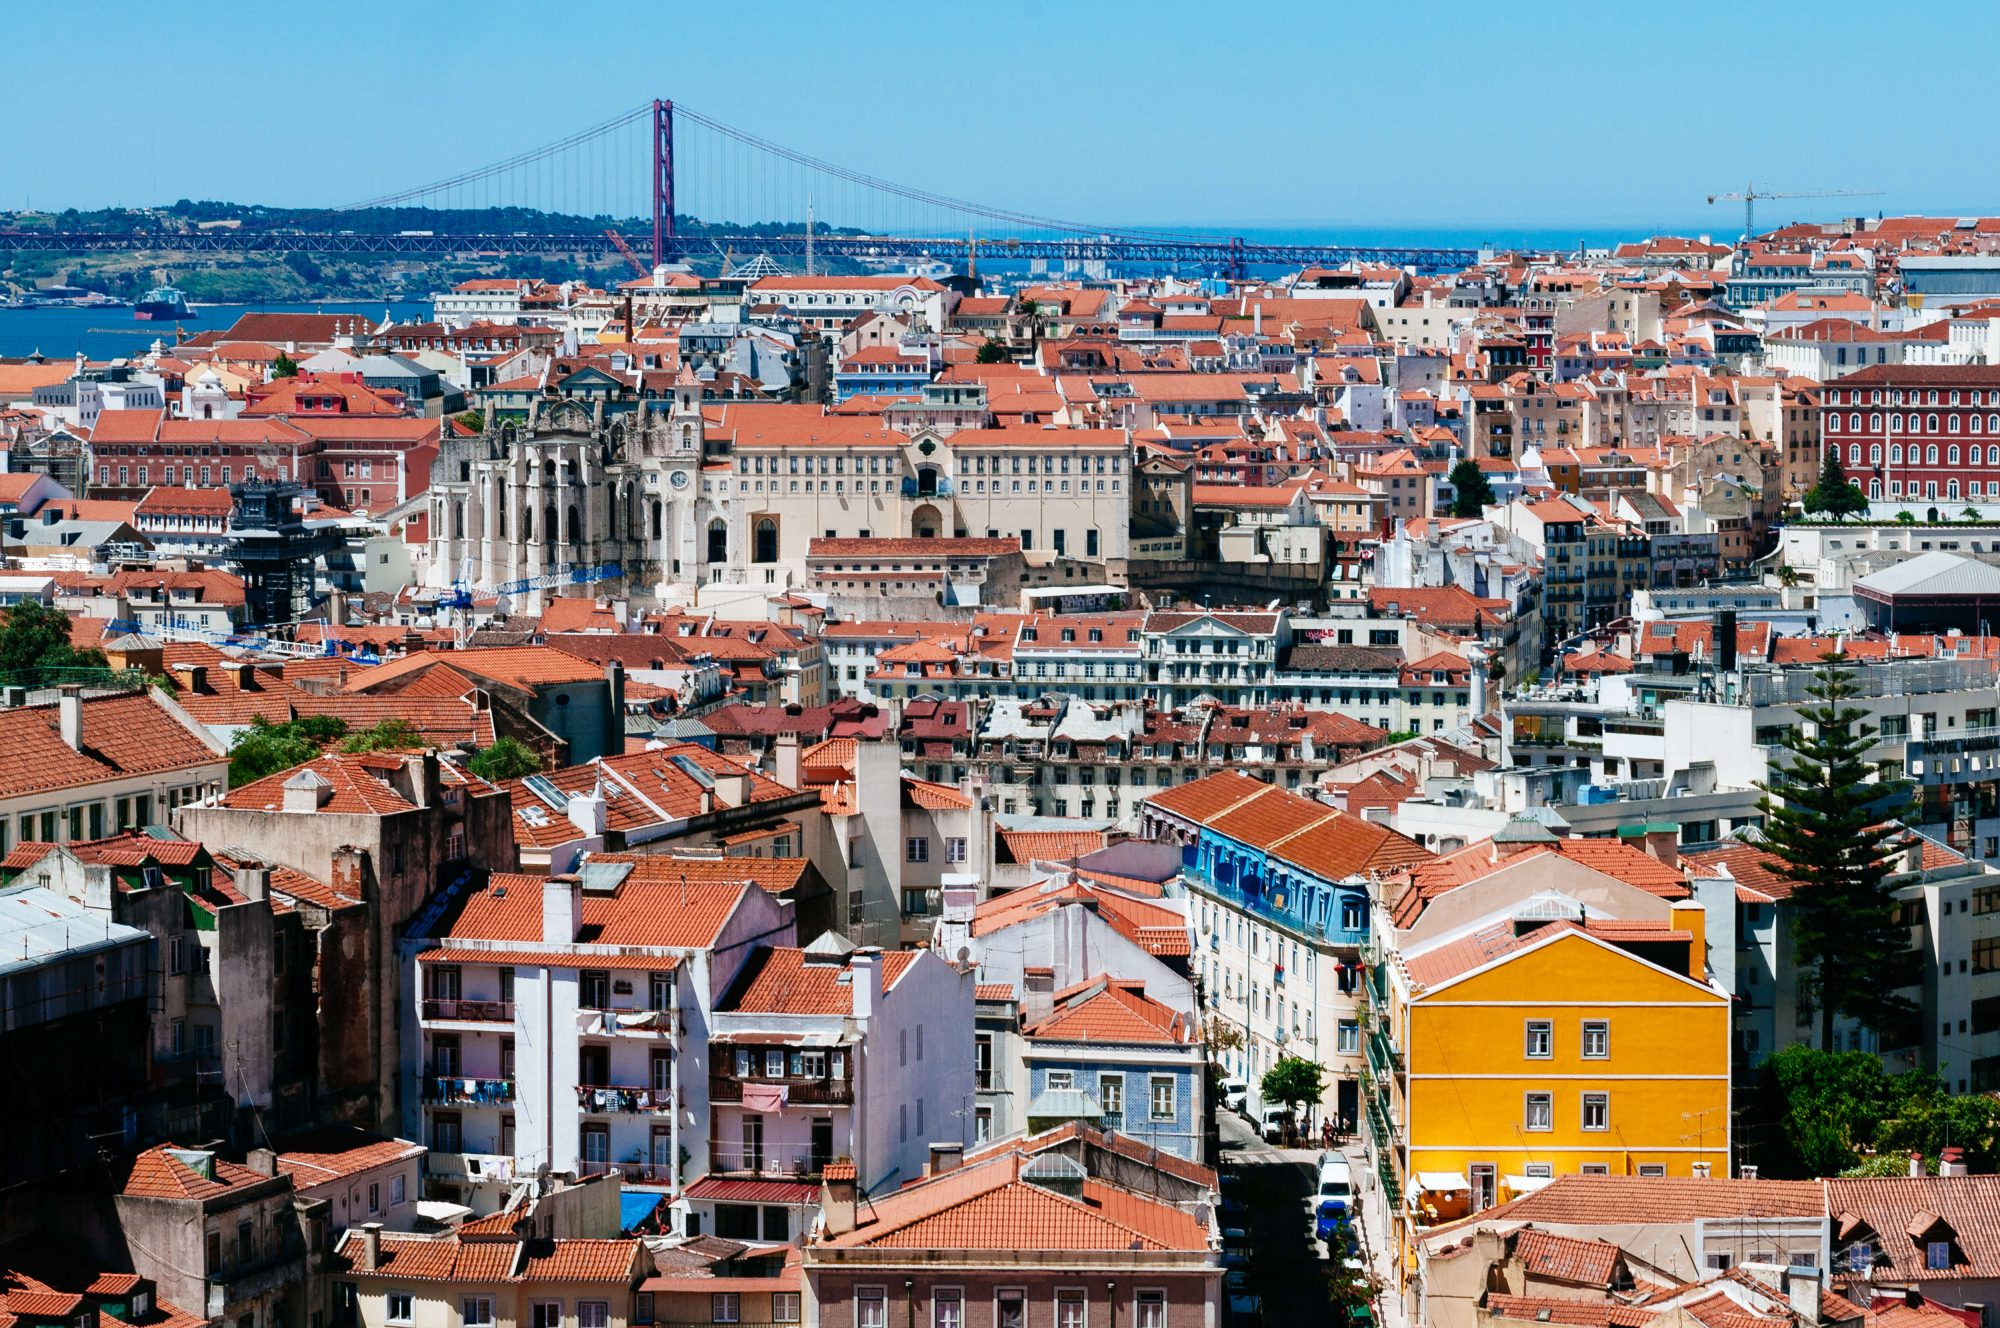 Lisbon cityscape with April 25th bridge at back